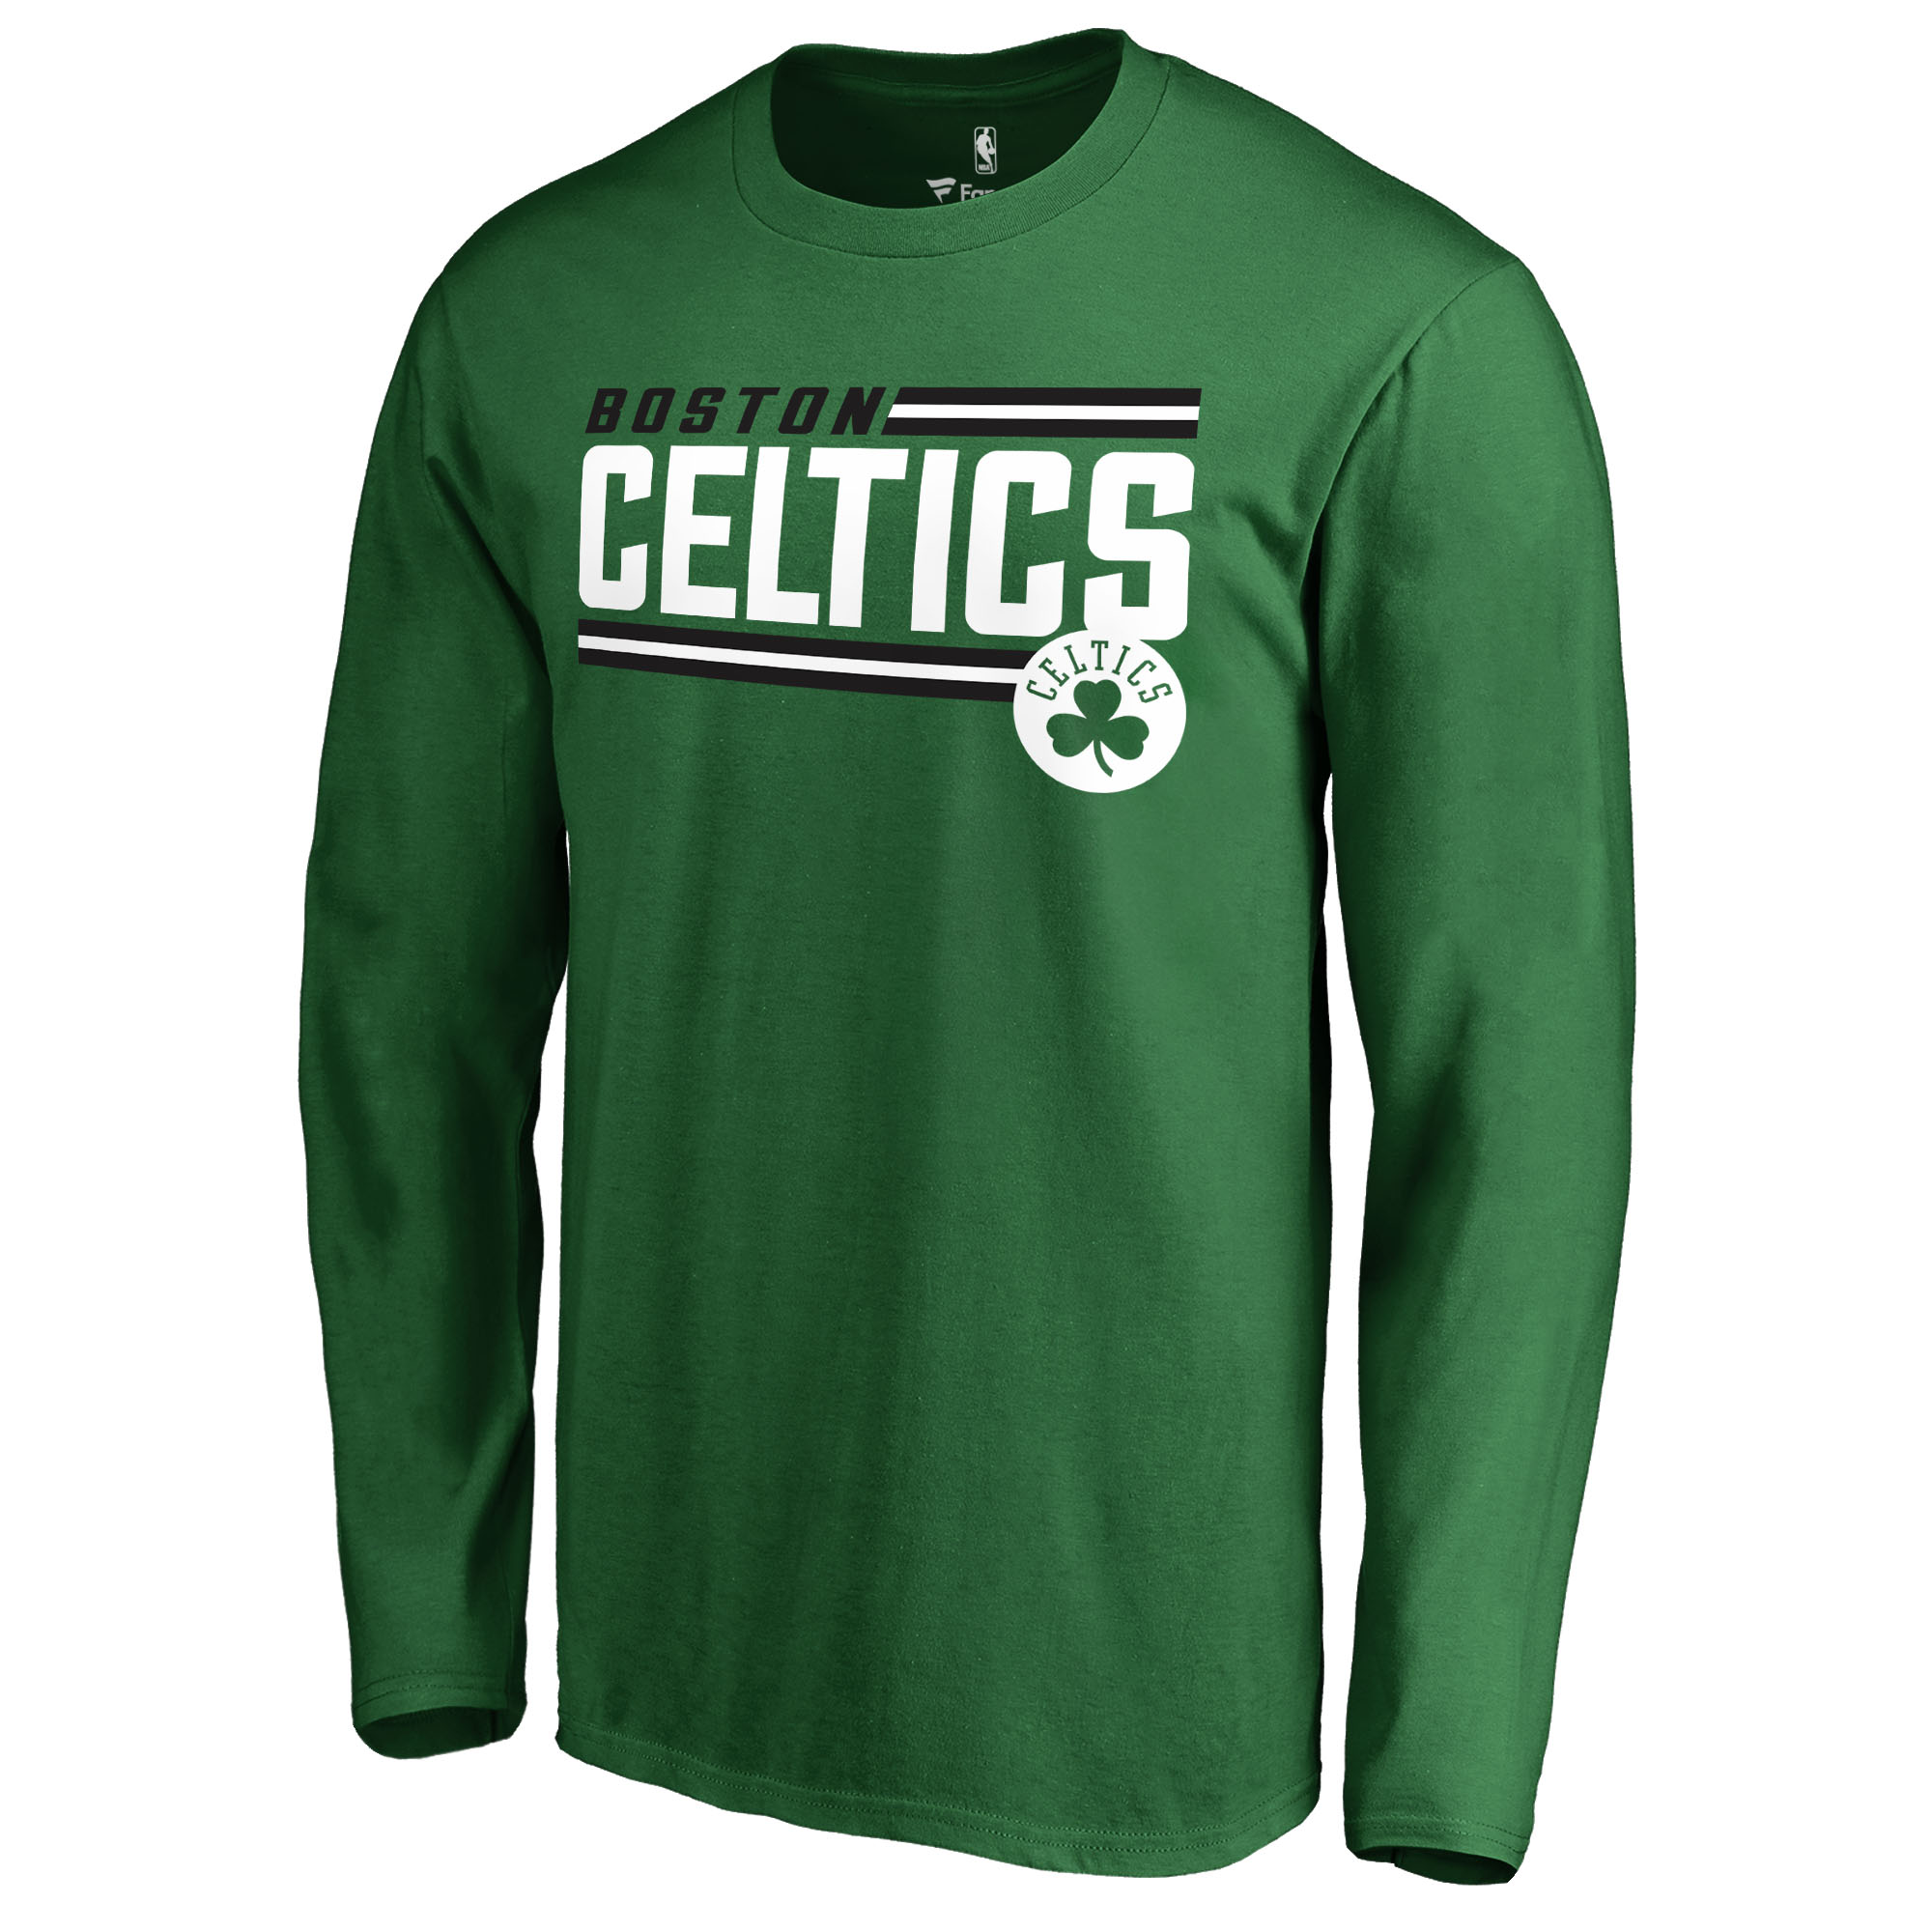 brand new 1d1dd 8a06d Boston Celtics Team Shop - Walmart.com